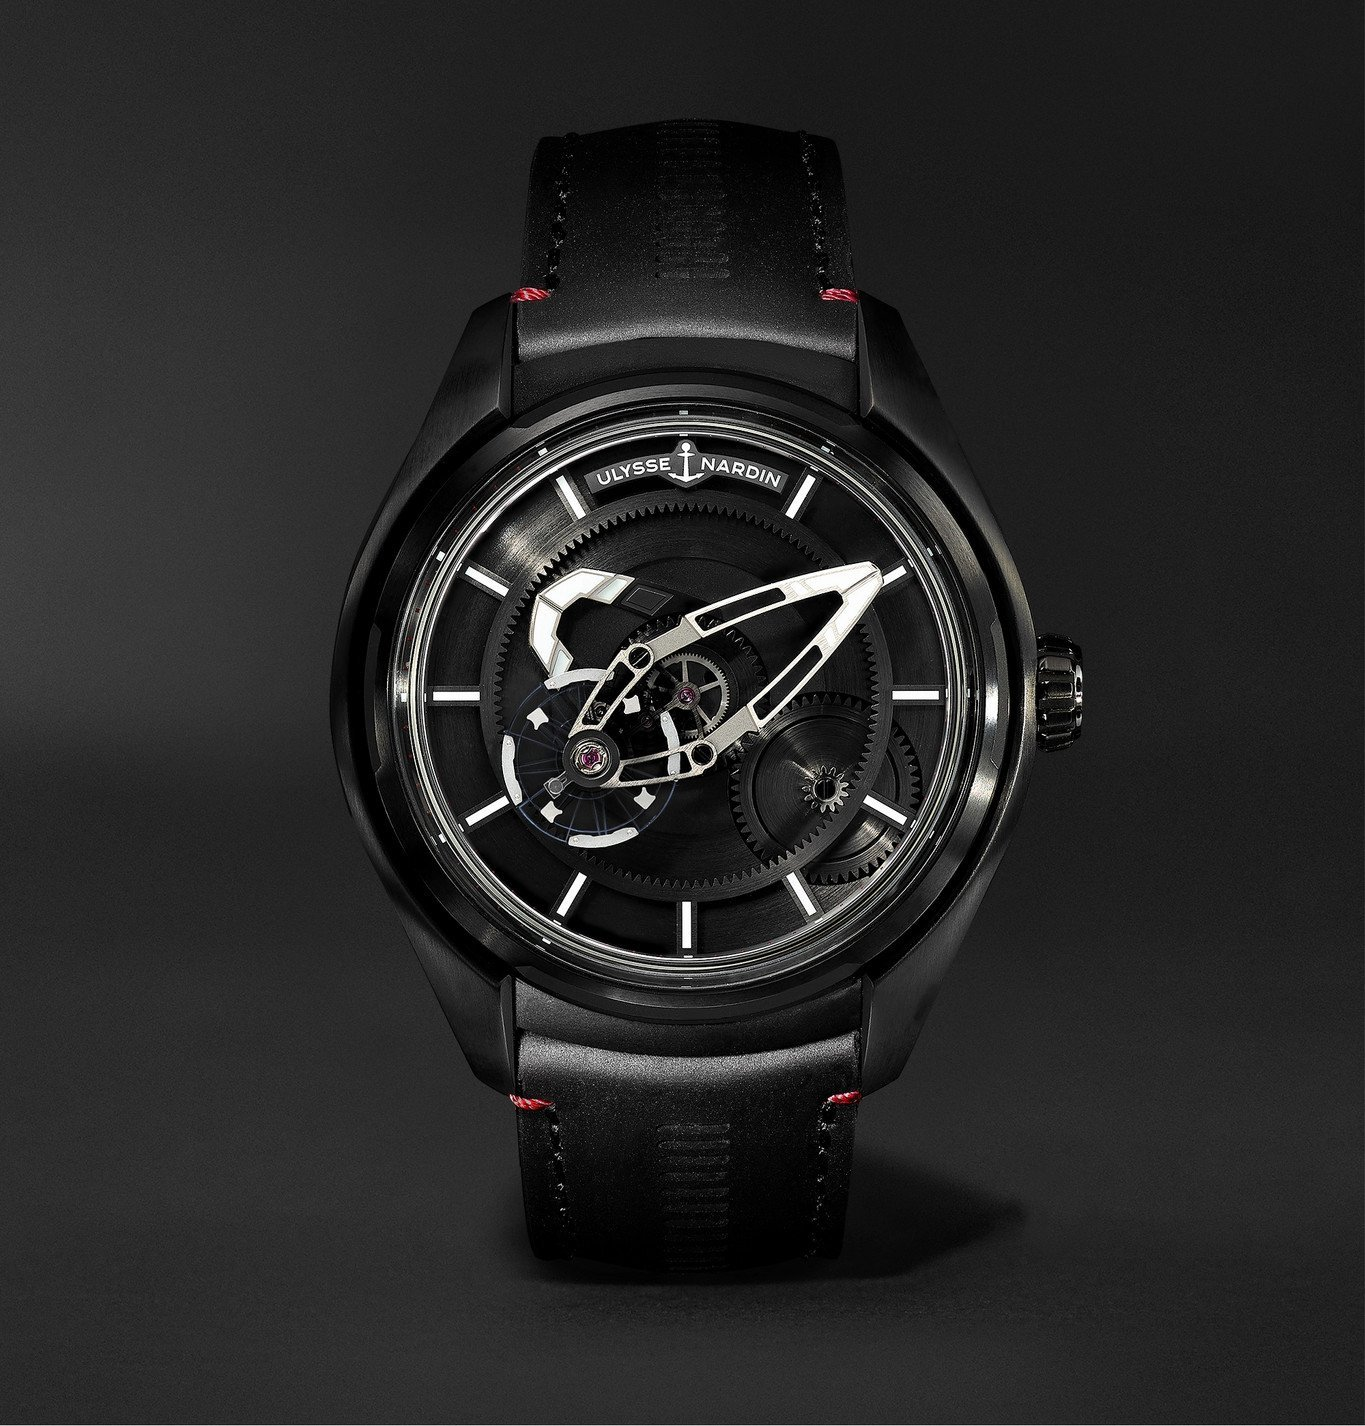 Photo: Ulysse Nardin - Freak X Ti Automatic 43mm Titanium and Leather Watch, Ref. No. 2303-270.1 - Black